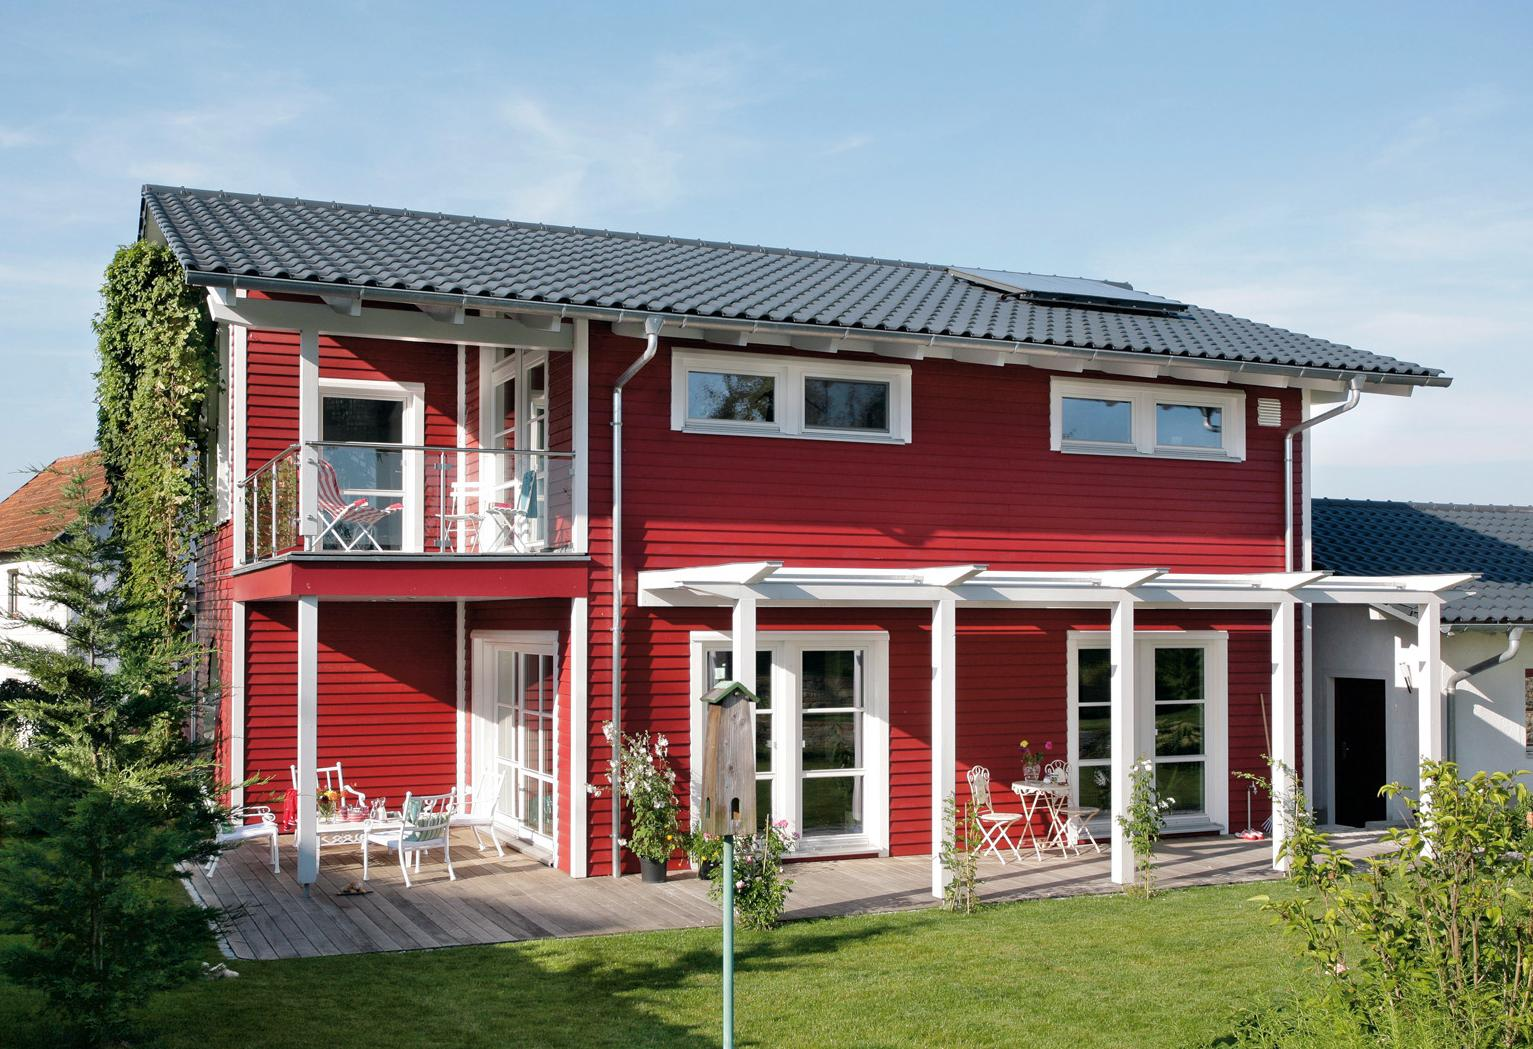 Detached house with red wooden facade in country style